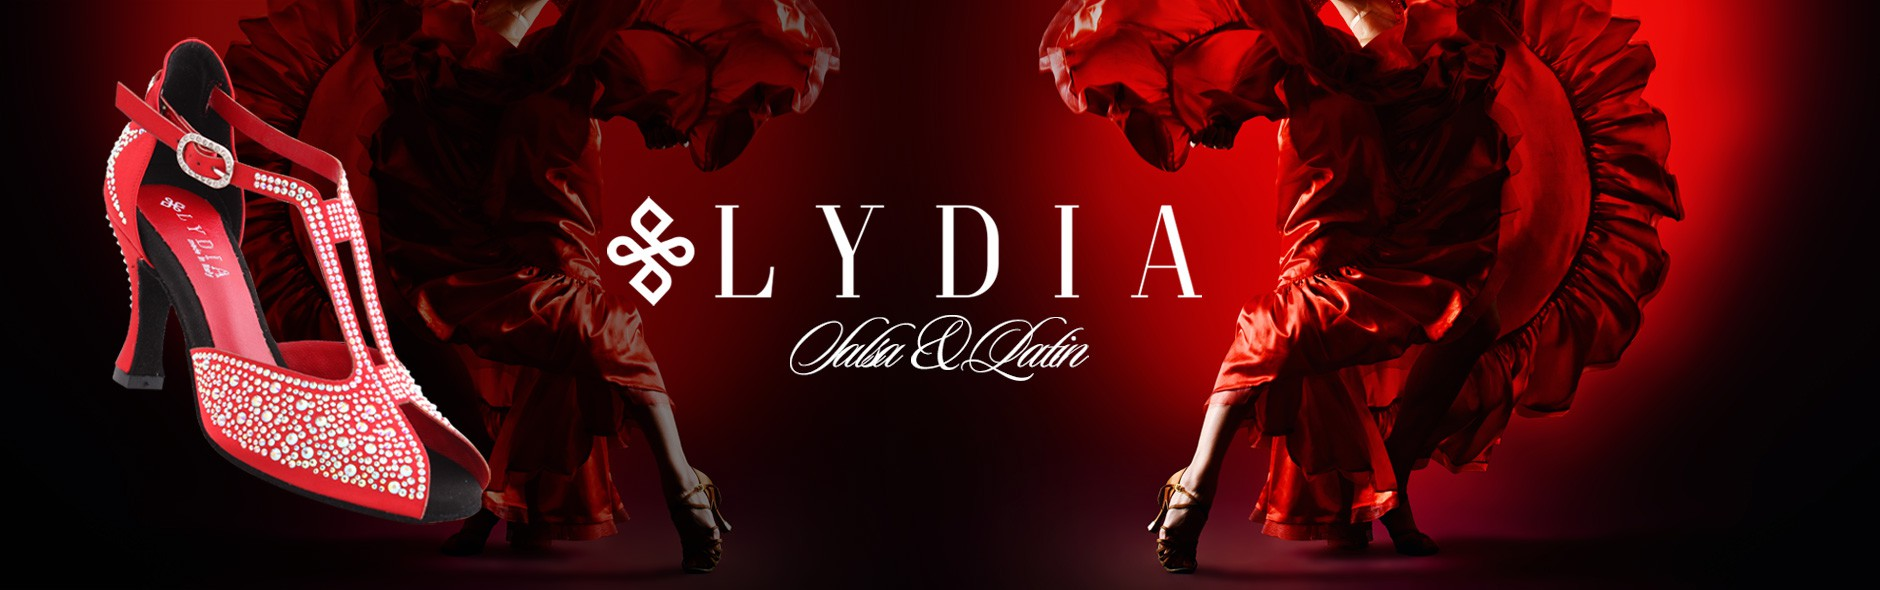 We present to you Lydia! Beauty without compromise!